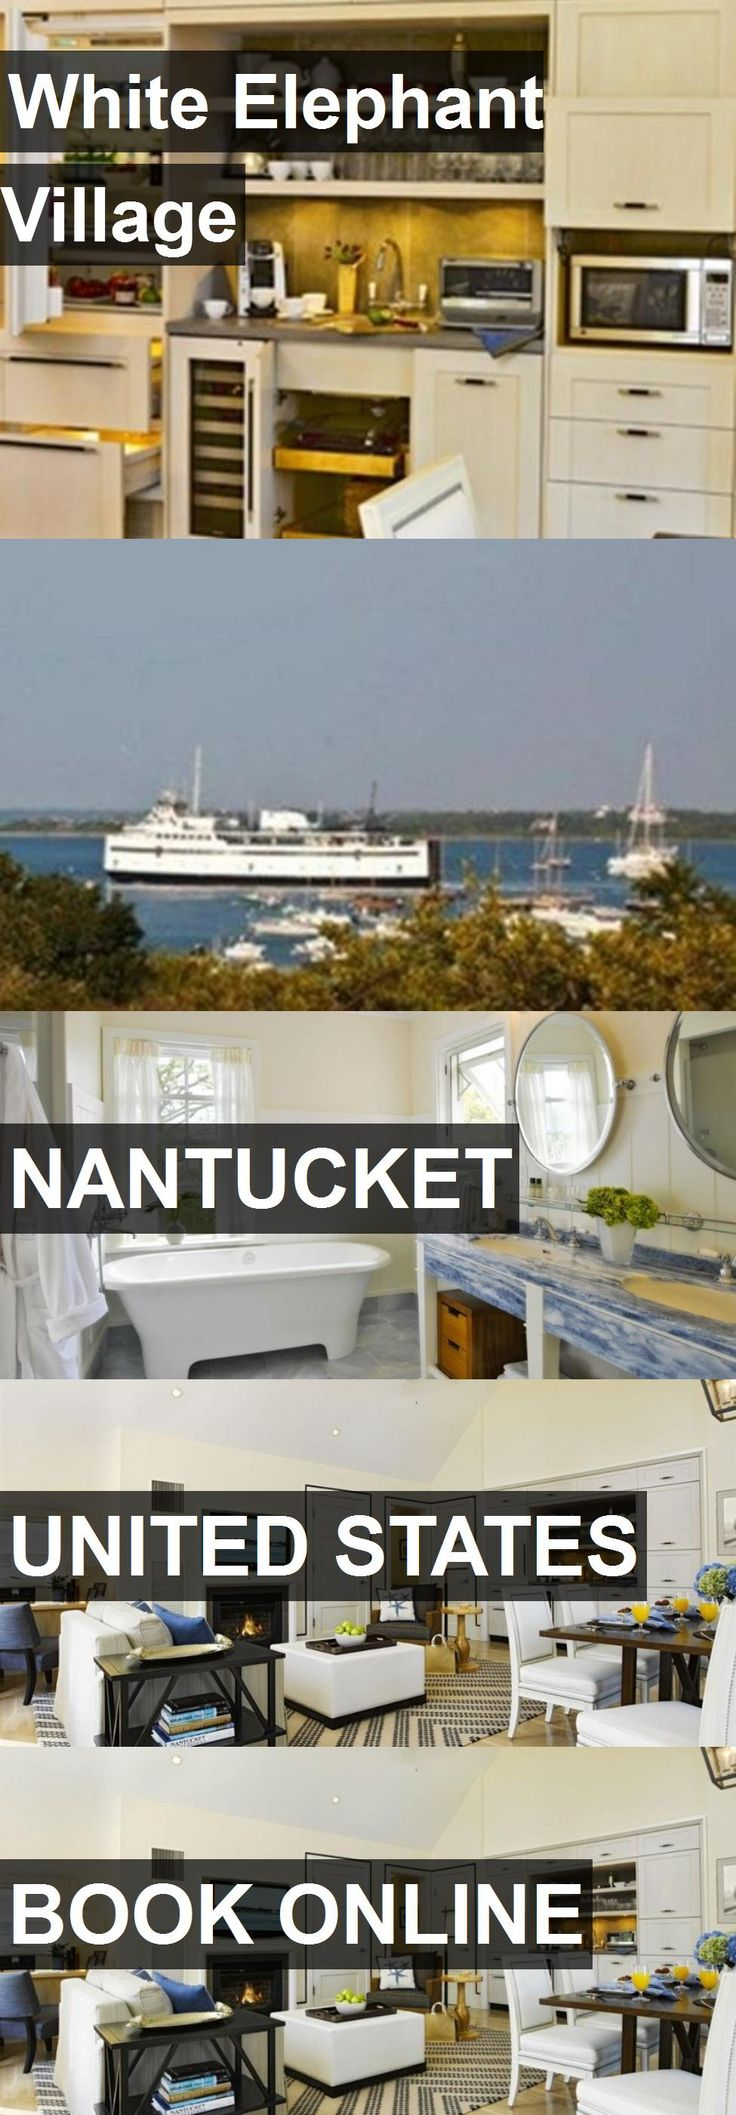 Hotel White Elephant Village in Nantucket, United States. For more information, photos, reviews and best prices please follow the link. #UnitedStates #Nantucket #hotel #travel #vacation